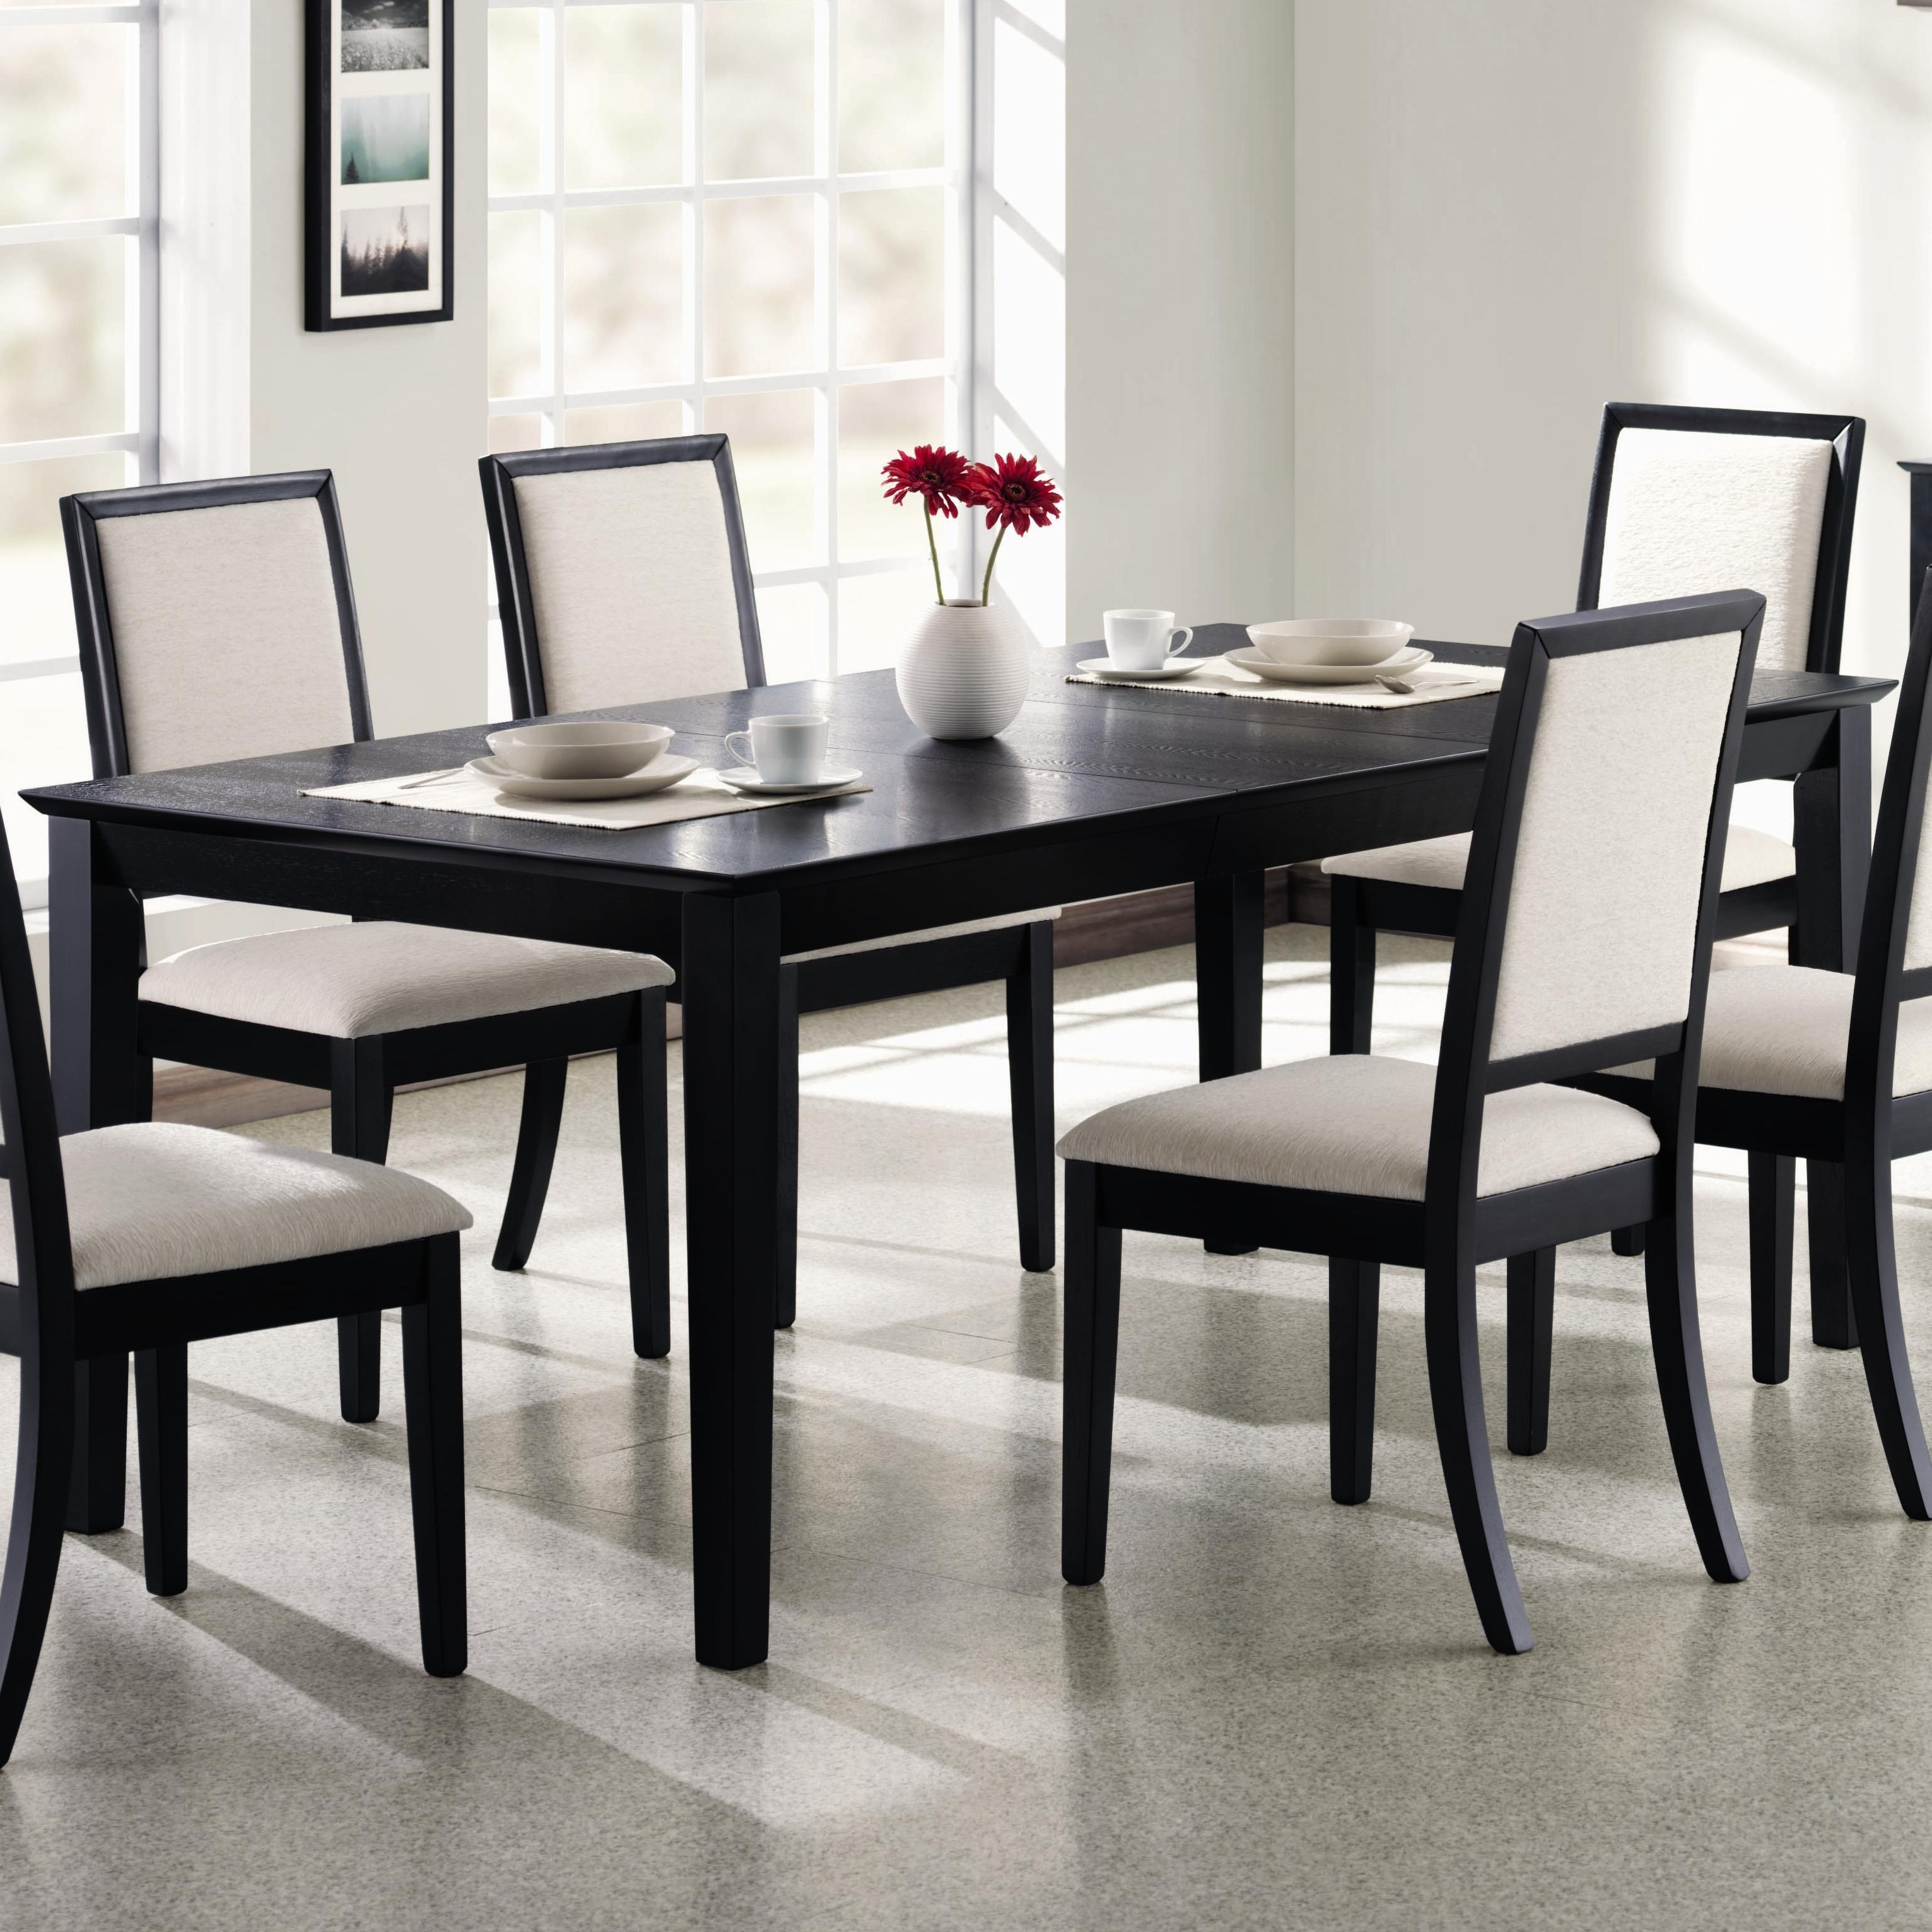 """Dining Tables in Well known Coaster Lexton 101561 Rectangular Dining Table With 18"""" Leaf"""